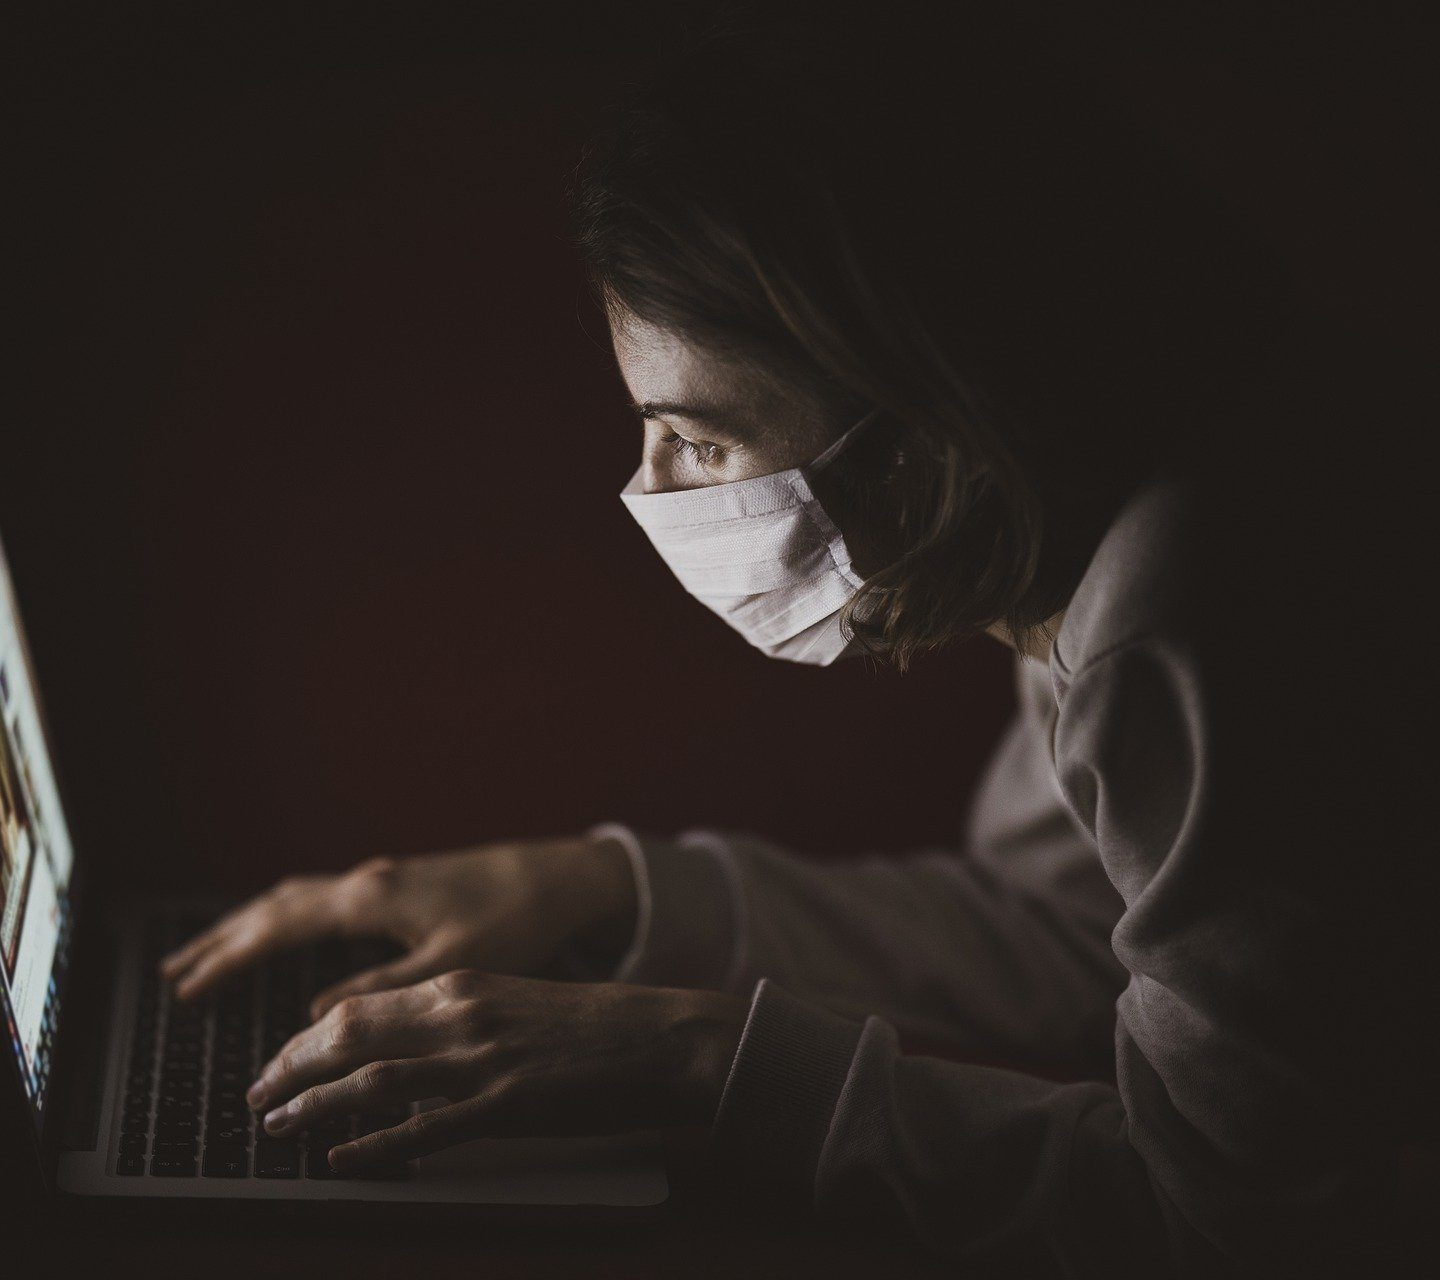 Most Productive Work From Home Tips During Quarantine